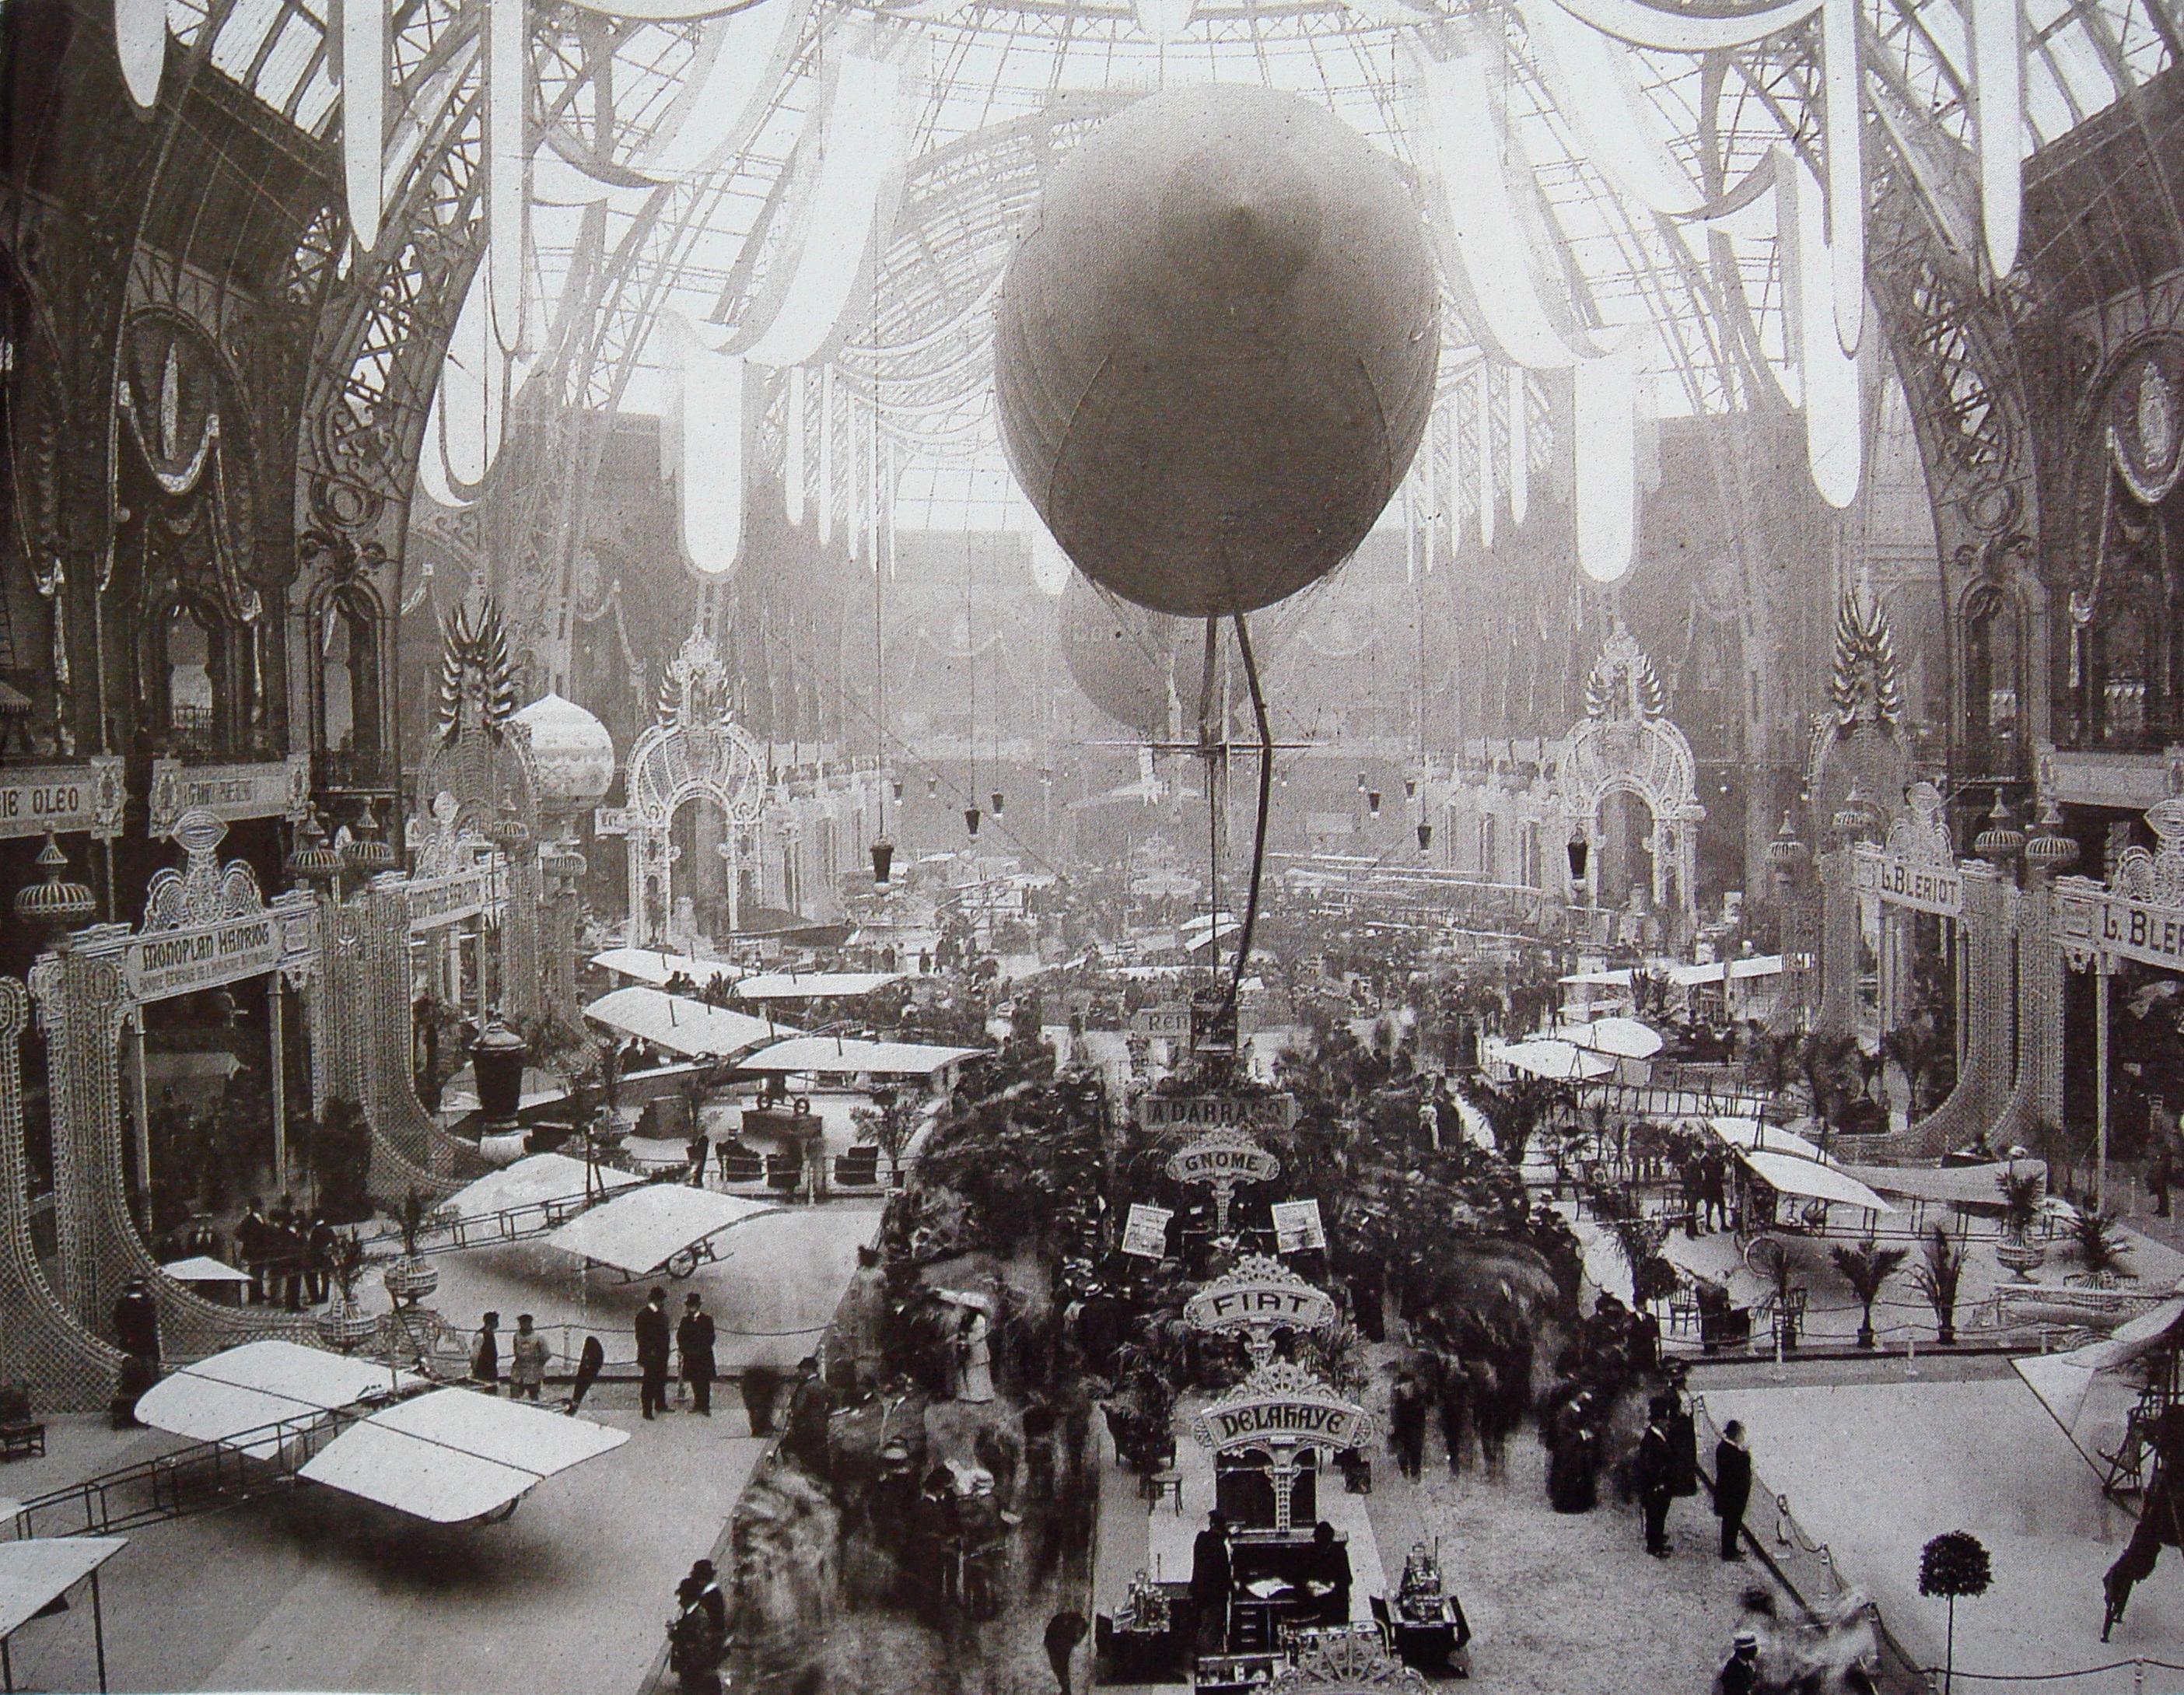 Salon de locomotion aerienne 1909 Grand Palais Paris.jpg